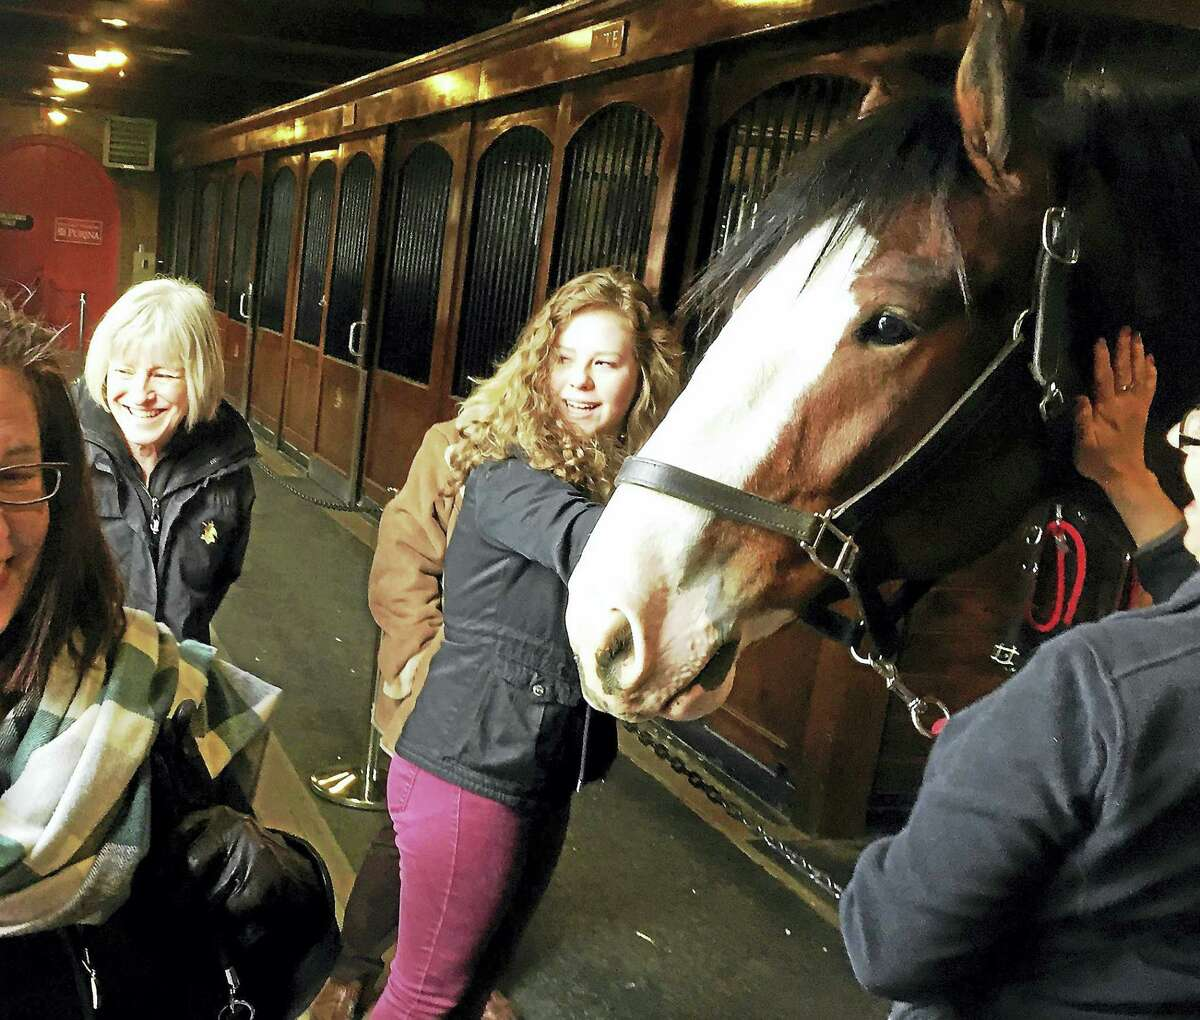 A Clydesdale at the Busch property moves forward a bit to greet entering visitors at the stable door as staff and other visitors react.